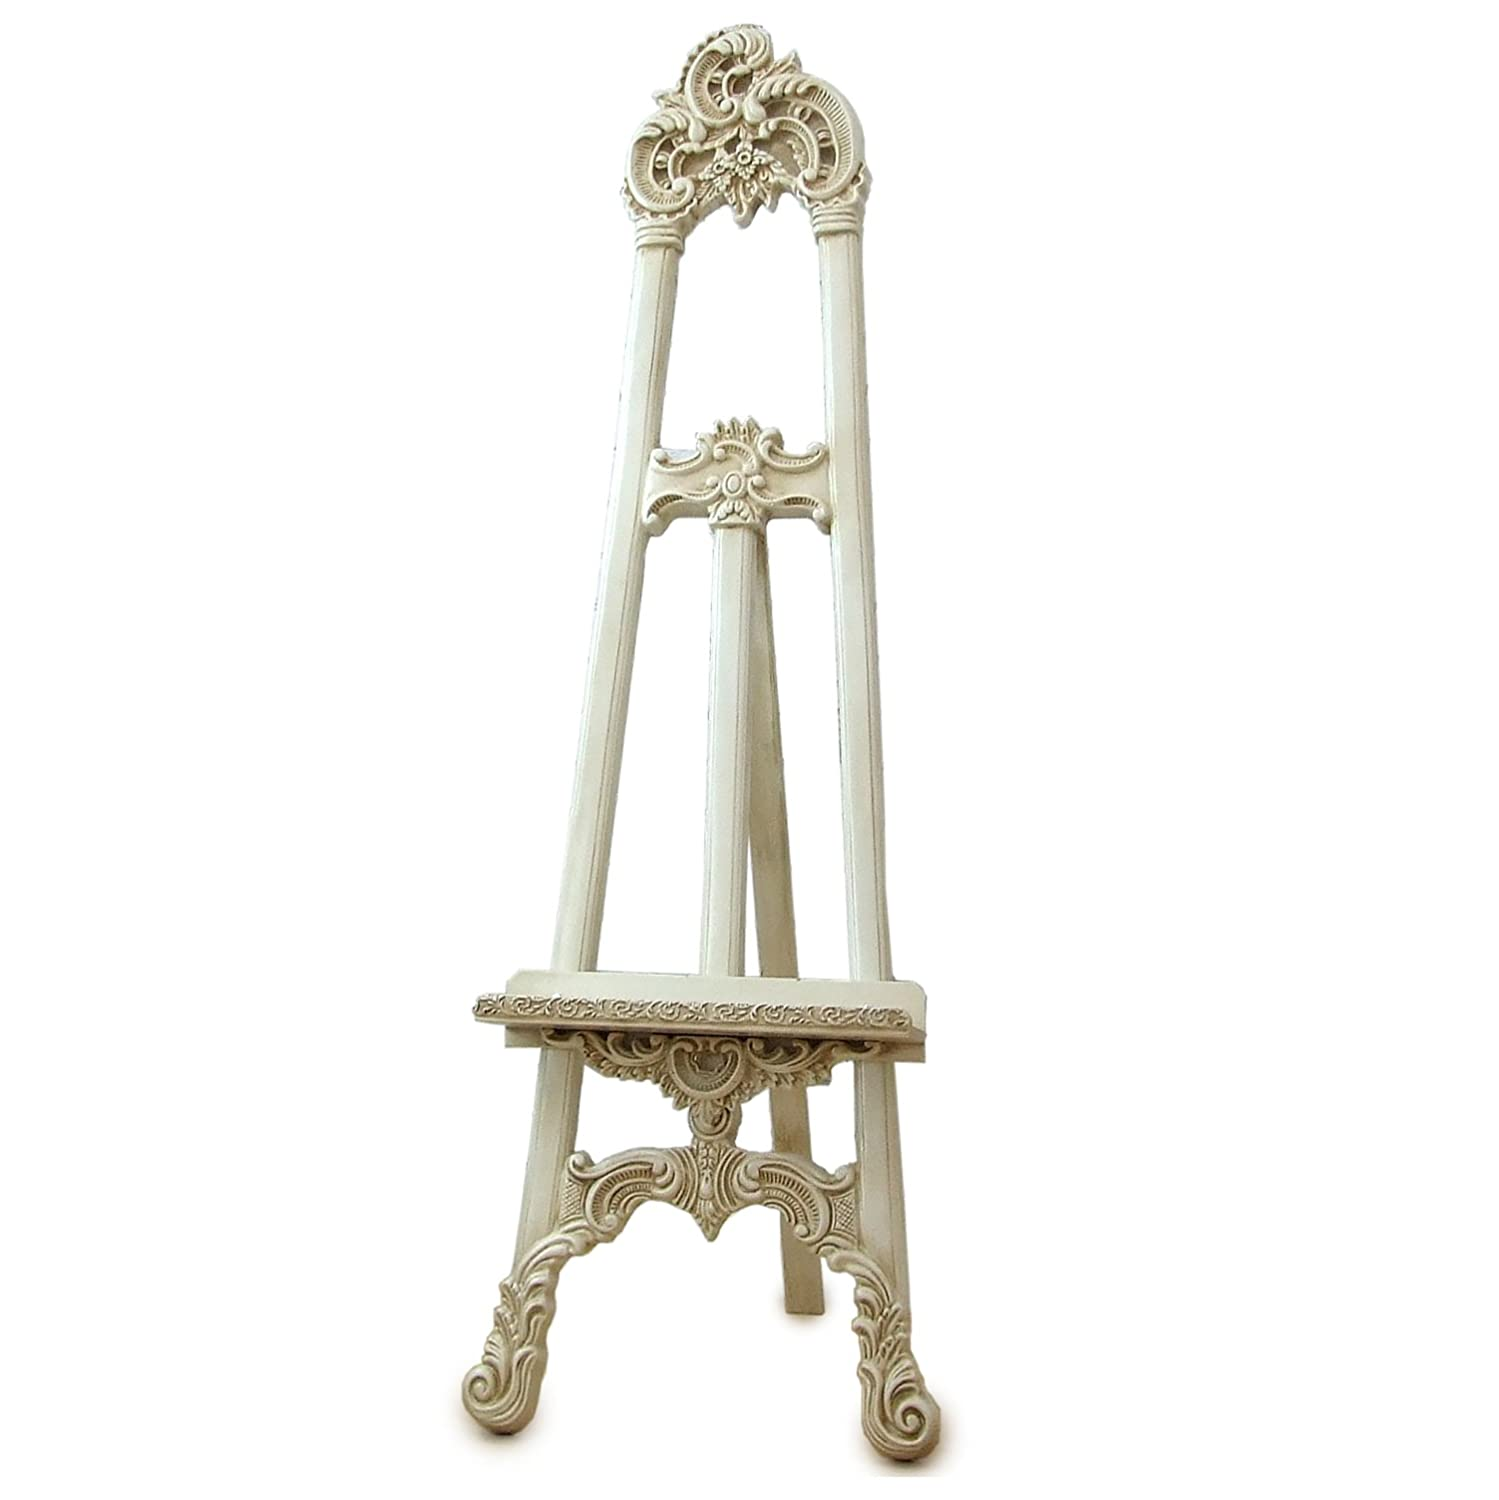 Barcelona Trading Antique Cream Shabby chic Easel ART DISPLAY PICTURE WEDDING MENU STAND Large